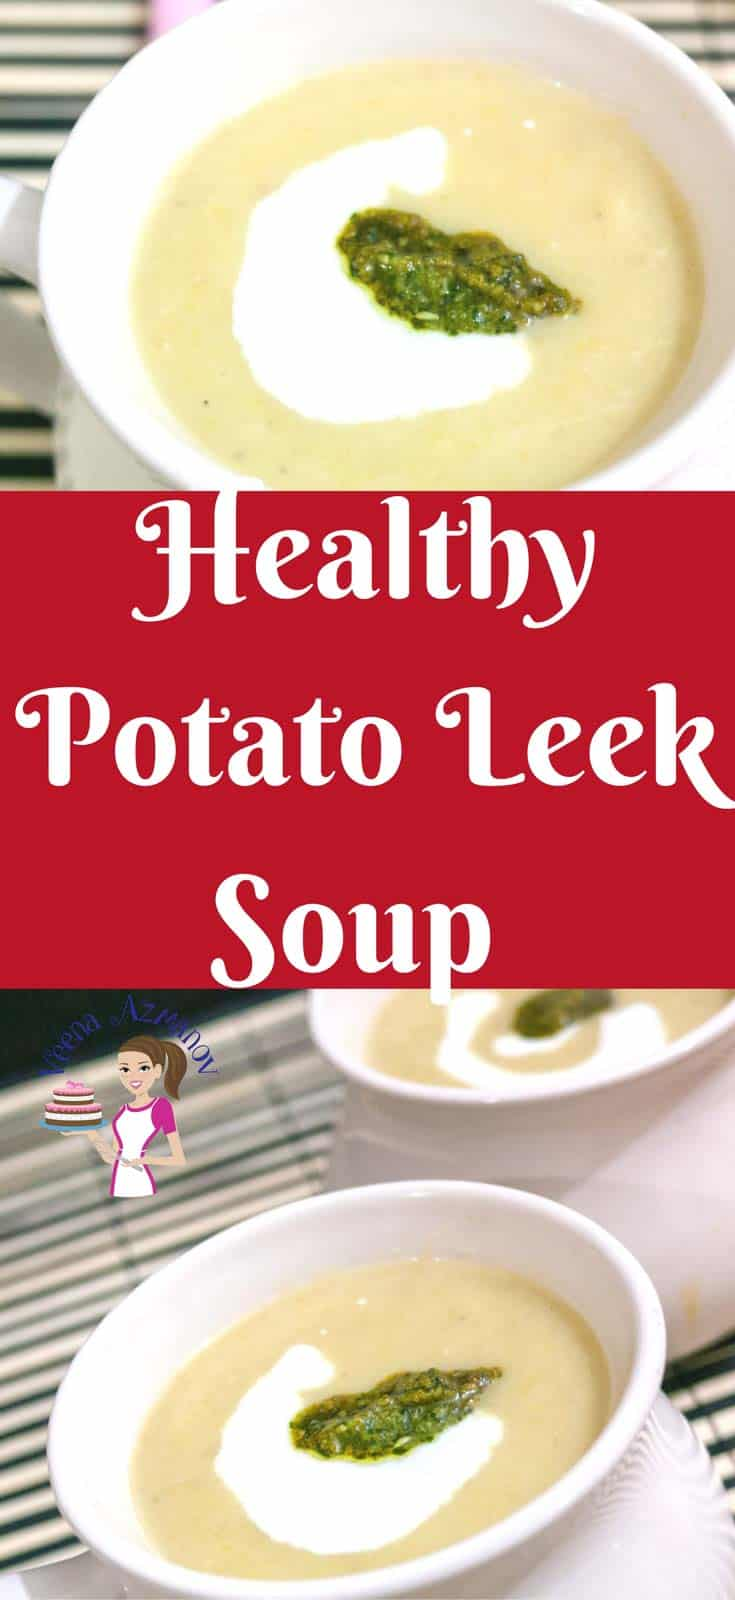 There is nothing more comforting than a bowl or warm healthy potato leek soup. This soup is simple easy and effortless so you can bring dinner on the table is less than 30 minutes. Serve this with crusty bread and a side salad you have a meal all ready. #Soup #Leek #Potato #healthy #winter #comfortfood #Soups #homemade #cooking #recipe